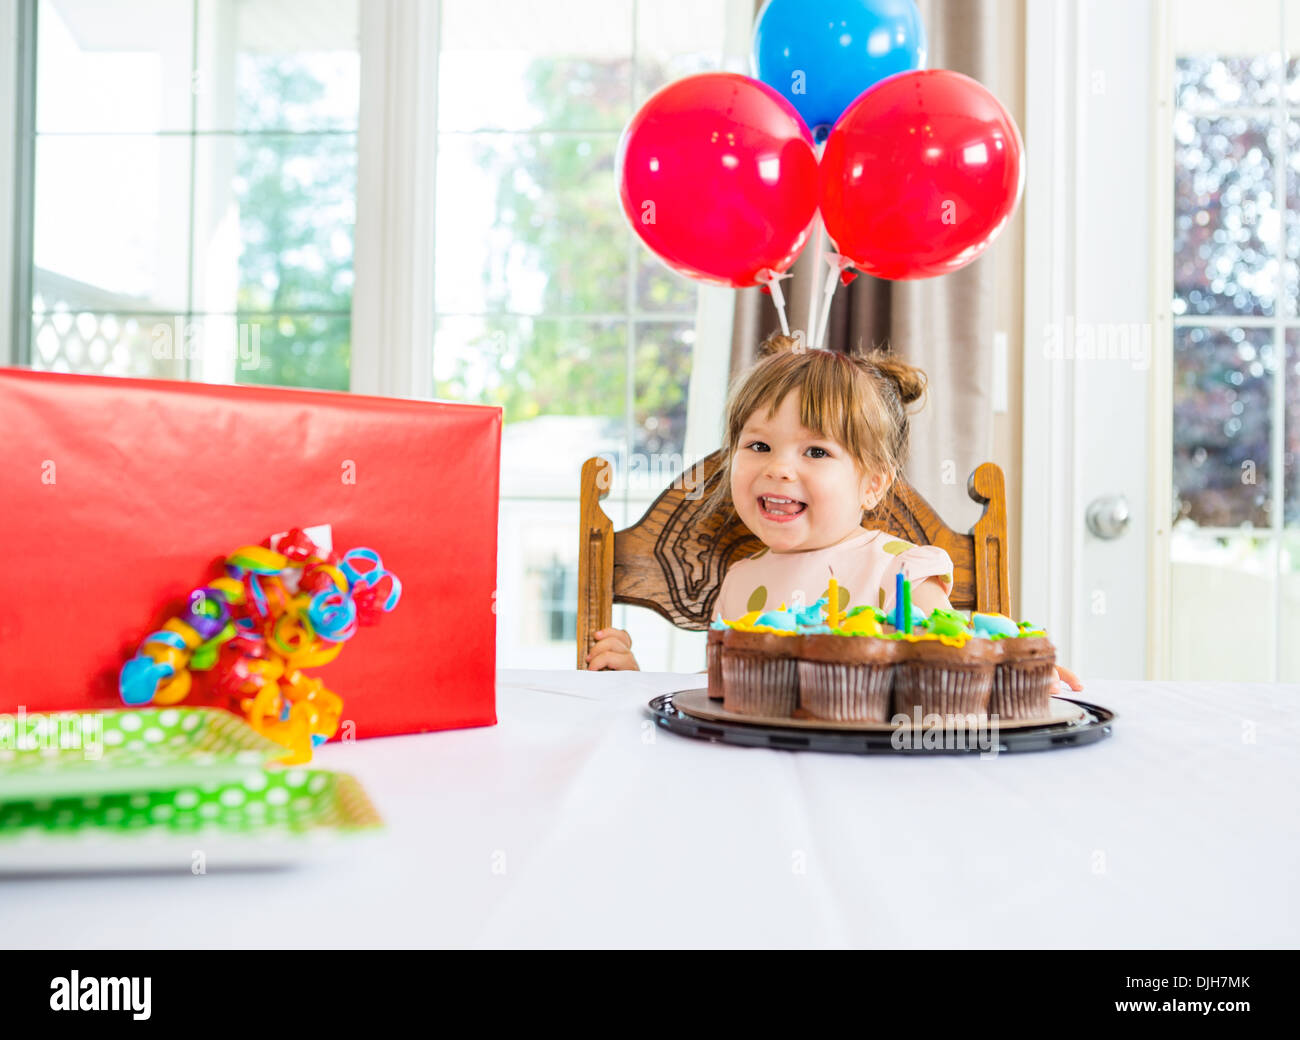 Birthday Girl With Cake And Present On Table - Stock Image